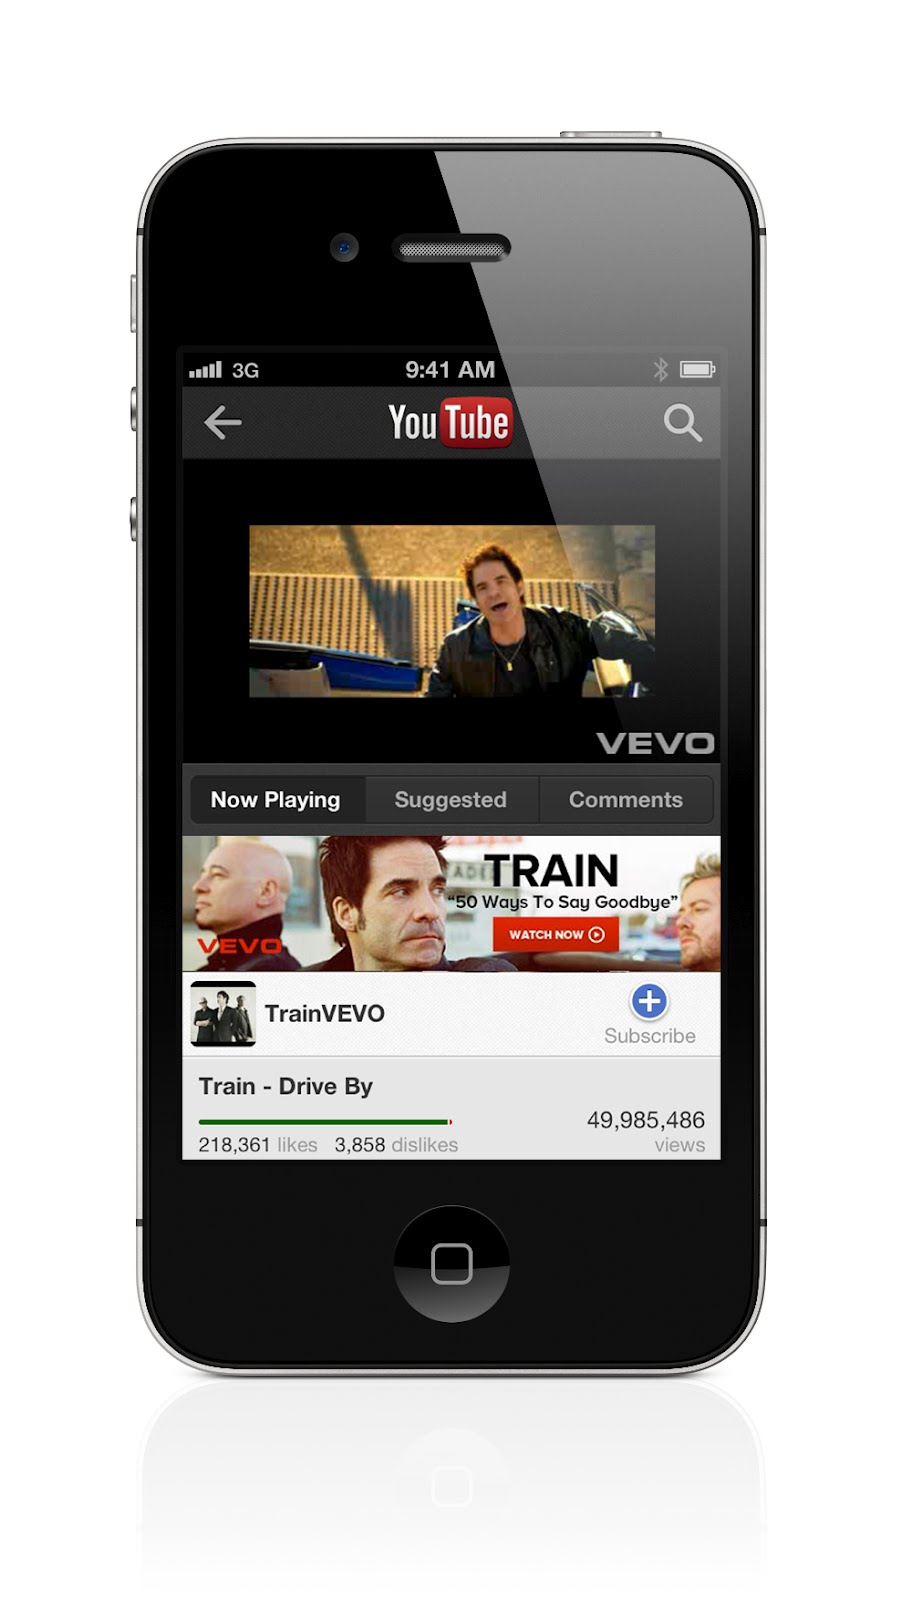 YouTube Offers New App for iPhone, Apple's iOS 6 - Peter ...